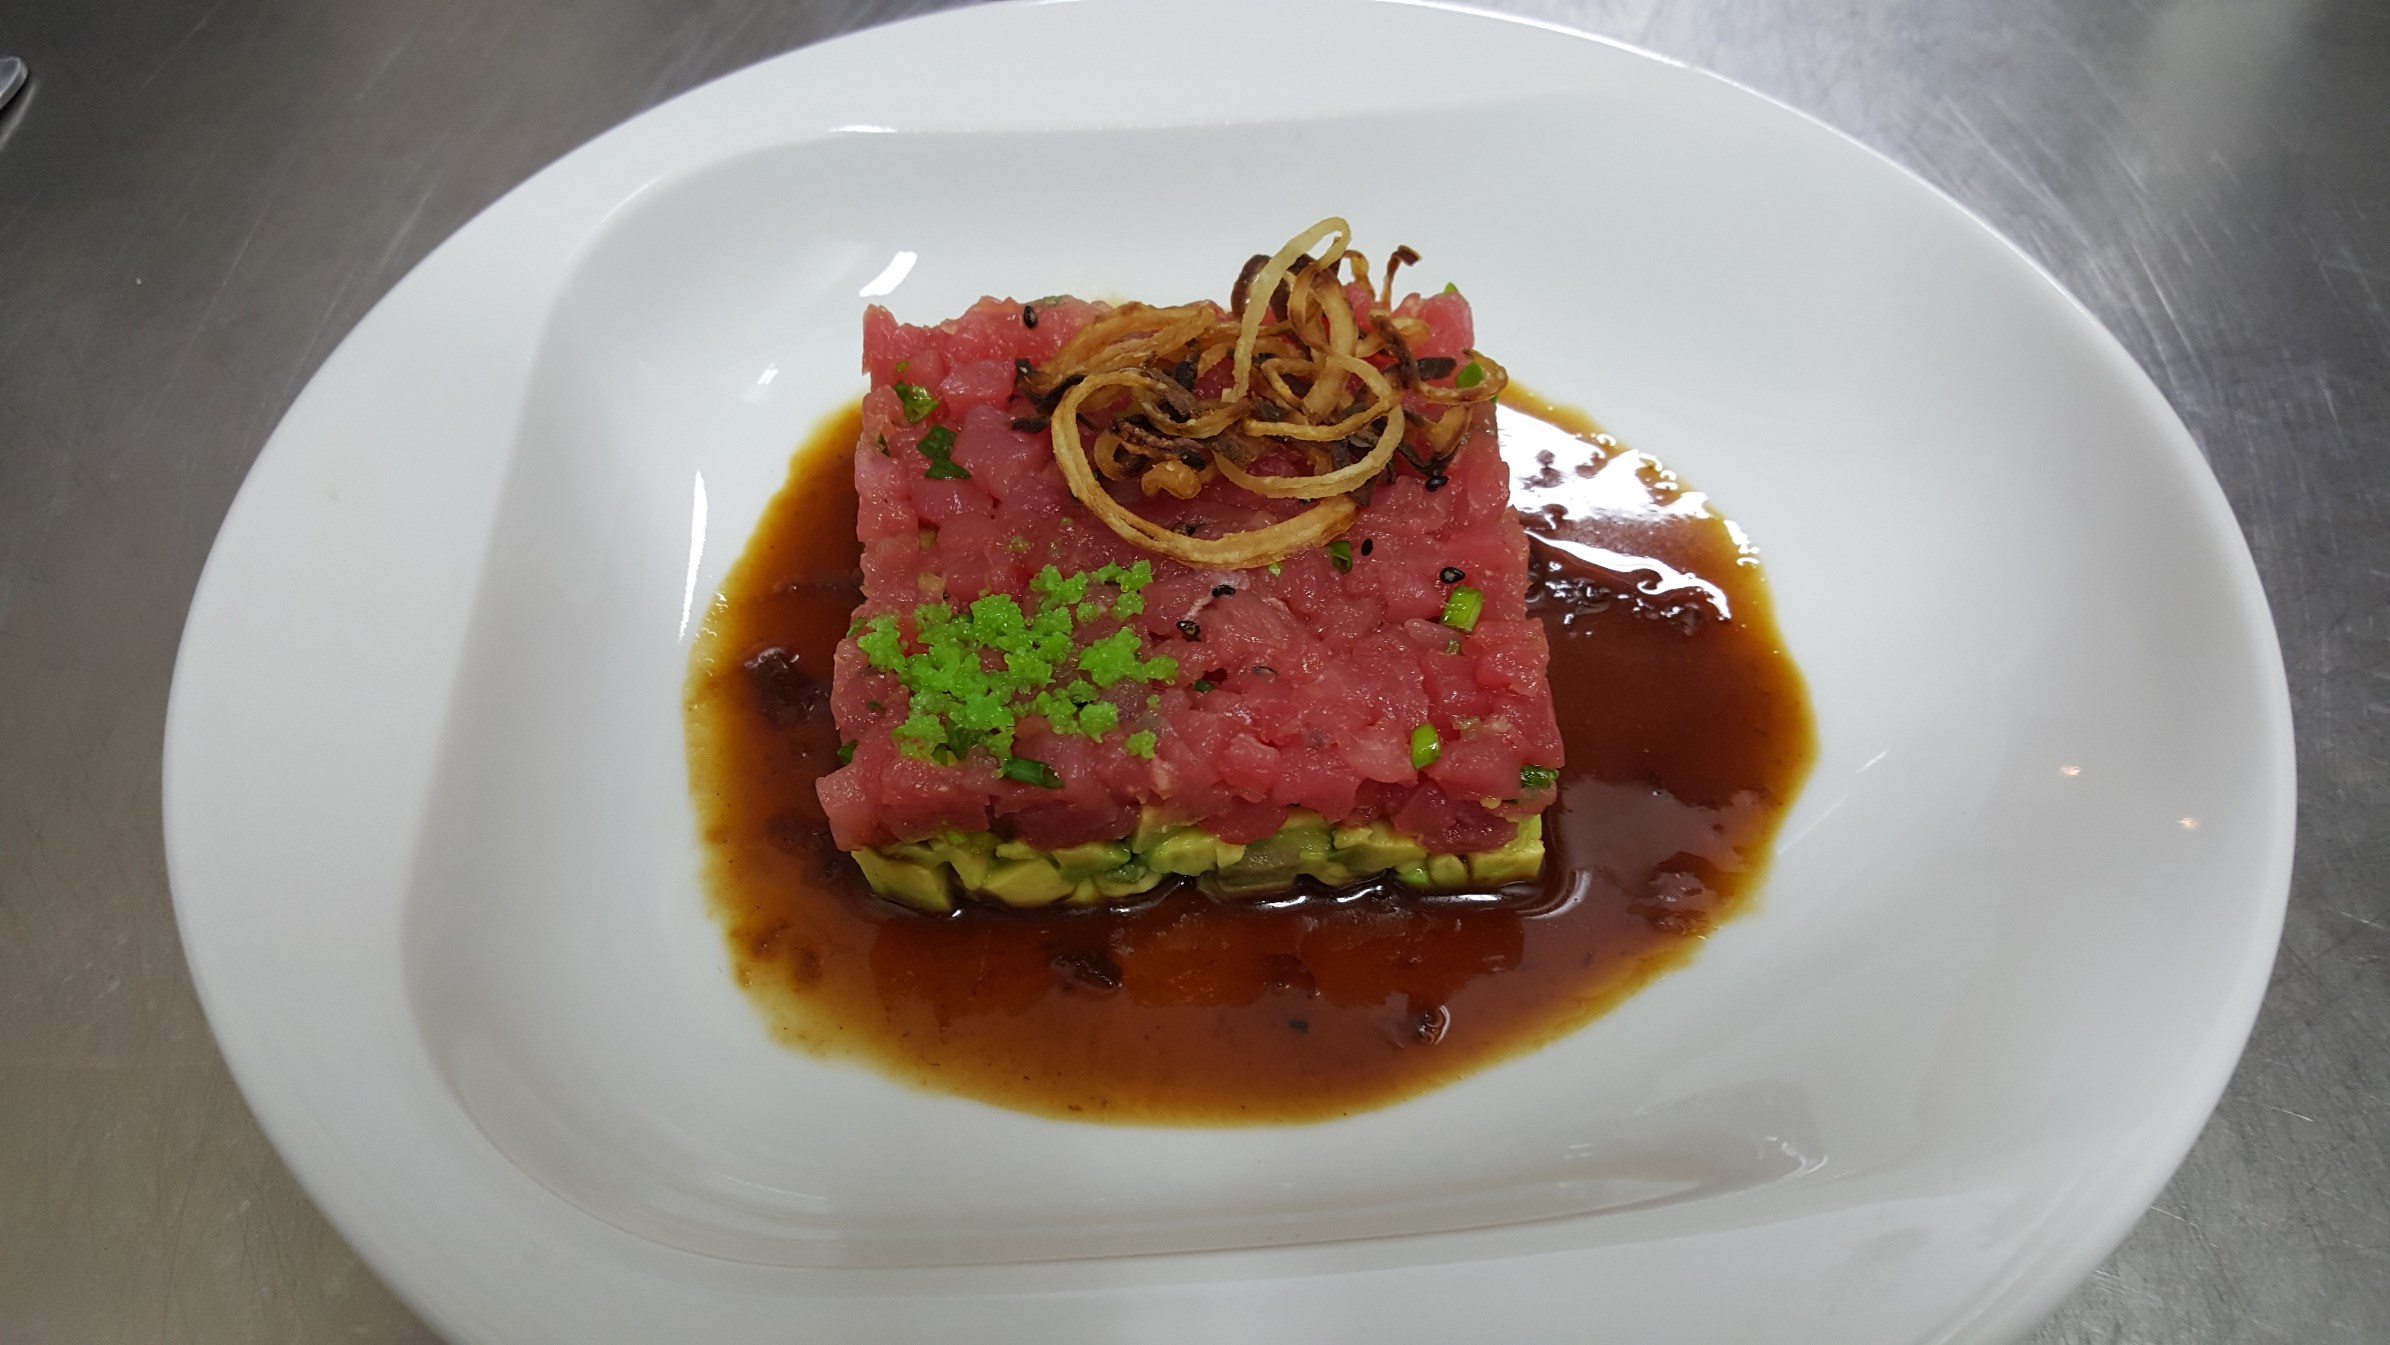 TUNA TARTAR - finely cut fresh tuna cubes with avocado and spices sprinkled with crispy shallot